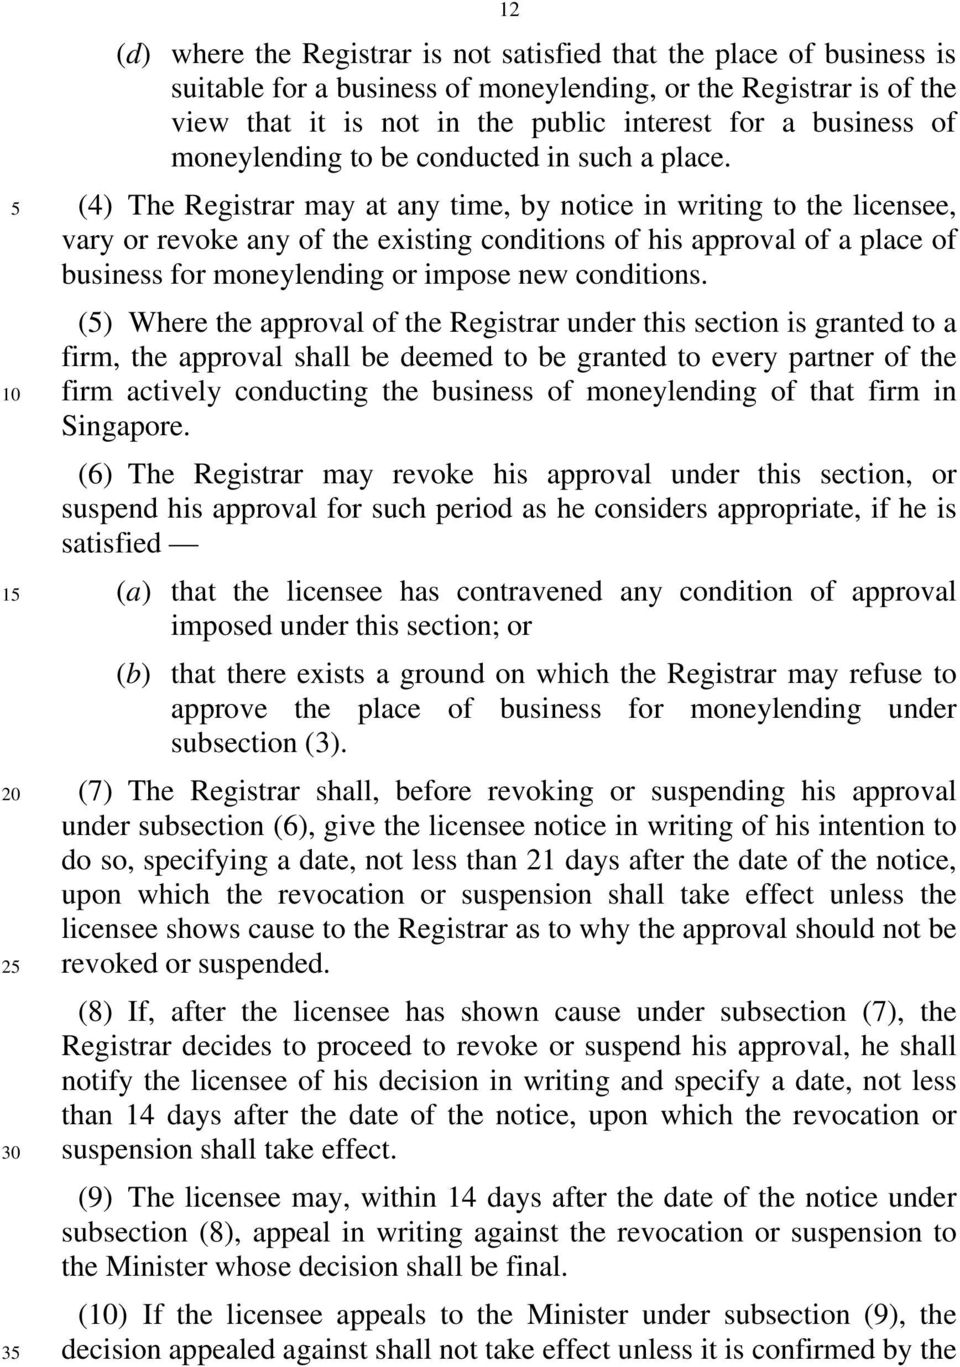 (4) The Registrar may at any time, by notice in writing to the licensee, vary or revoke any of the existing conditions of his approval of a place of business for moneylending or impose new conditions.